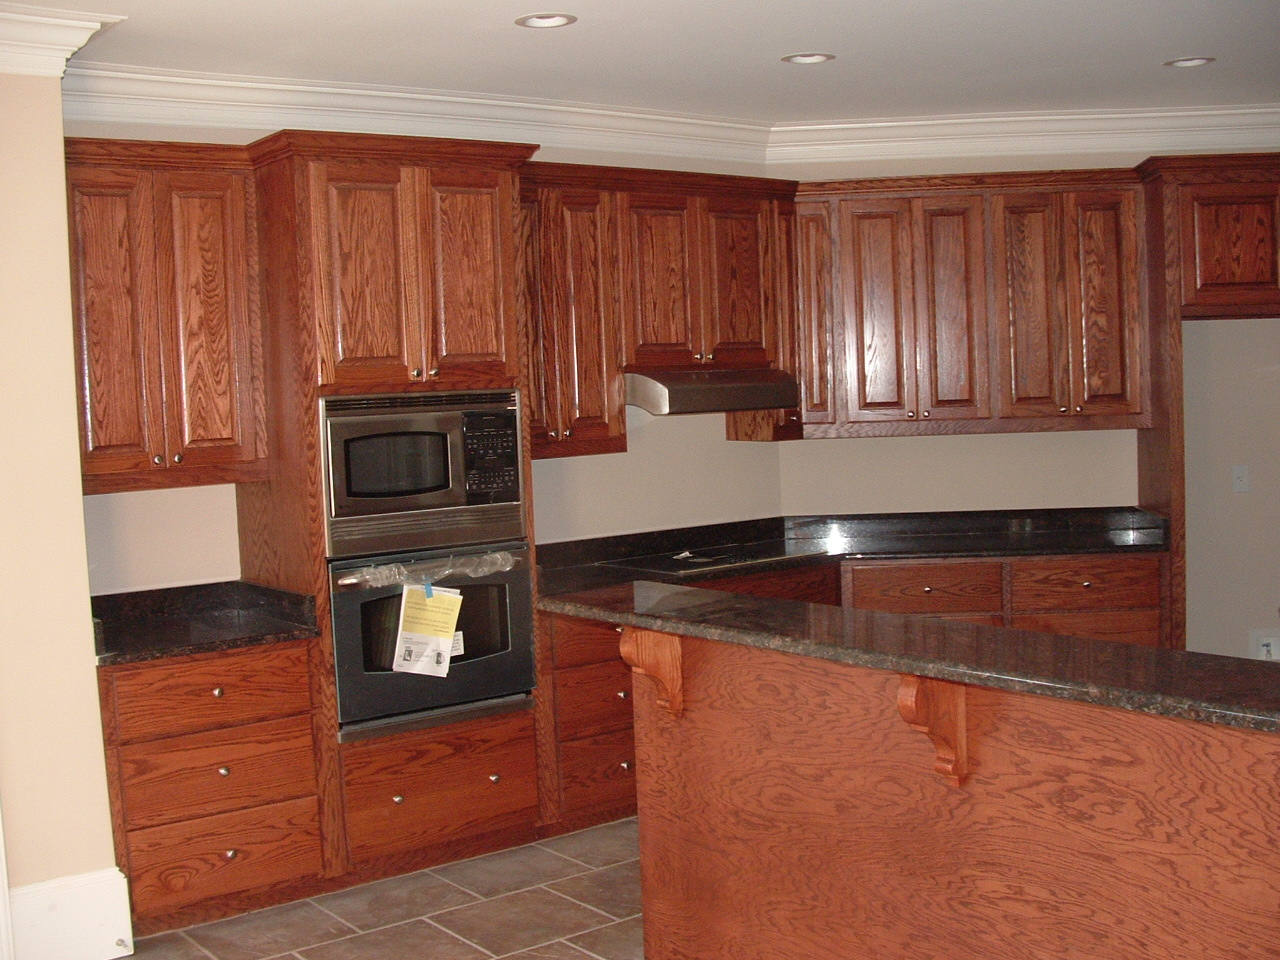 Kitchen cabinet table photo - 1